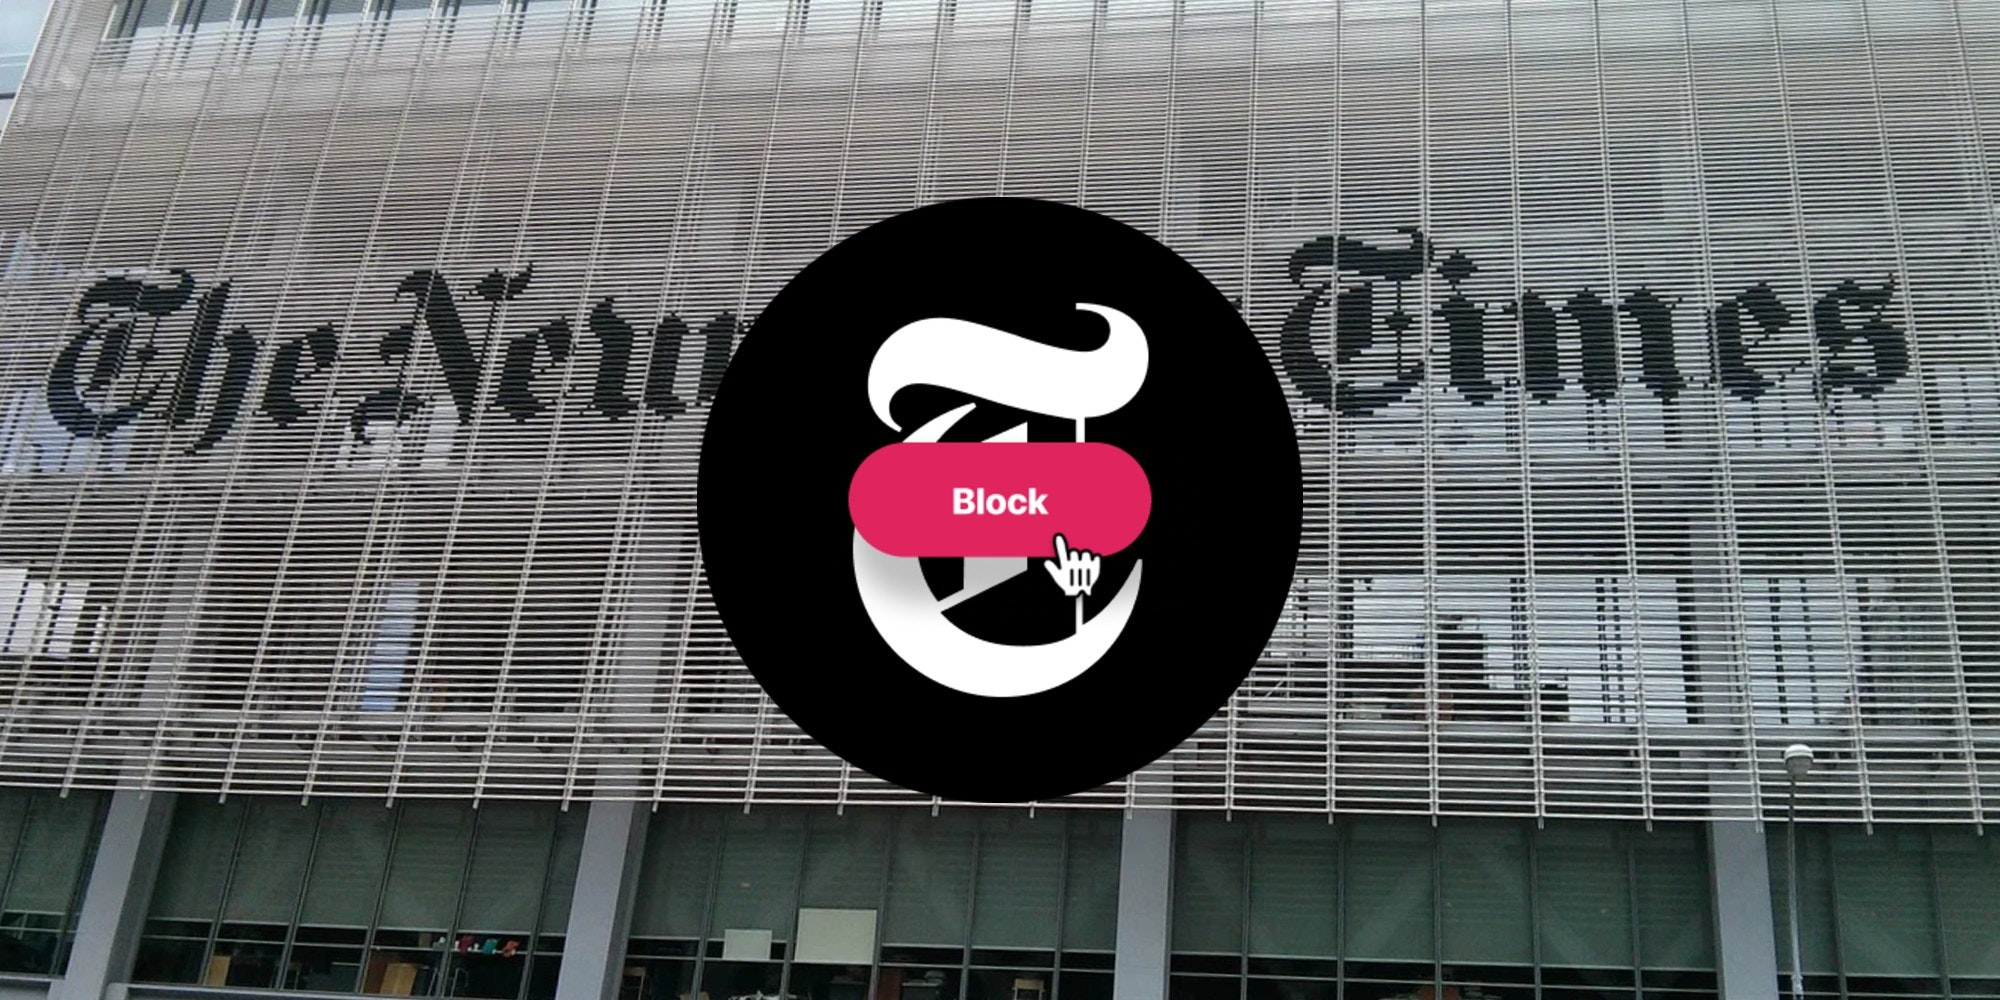 Block The New York times